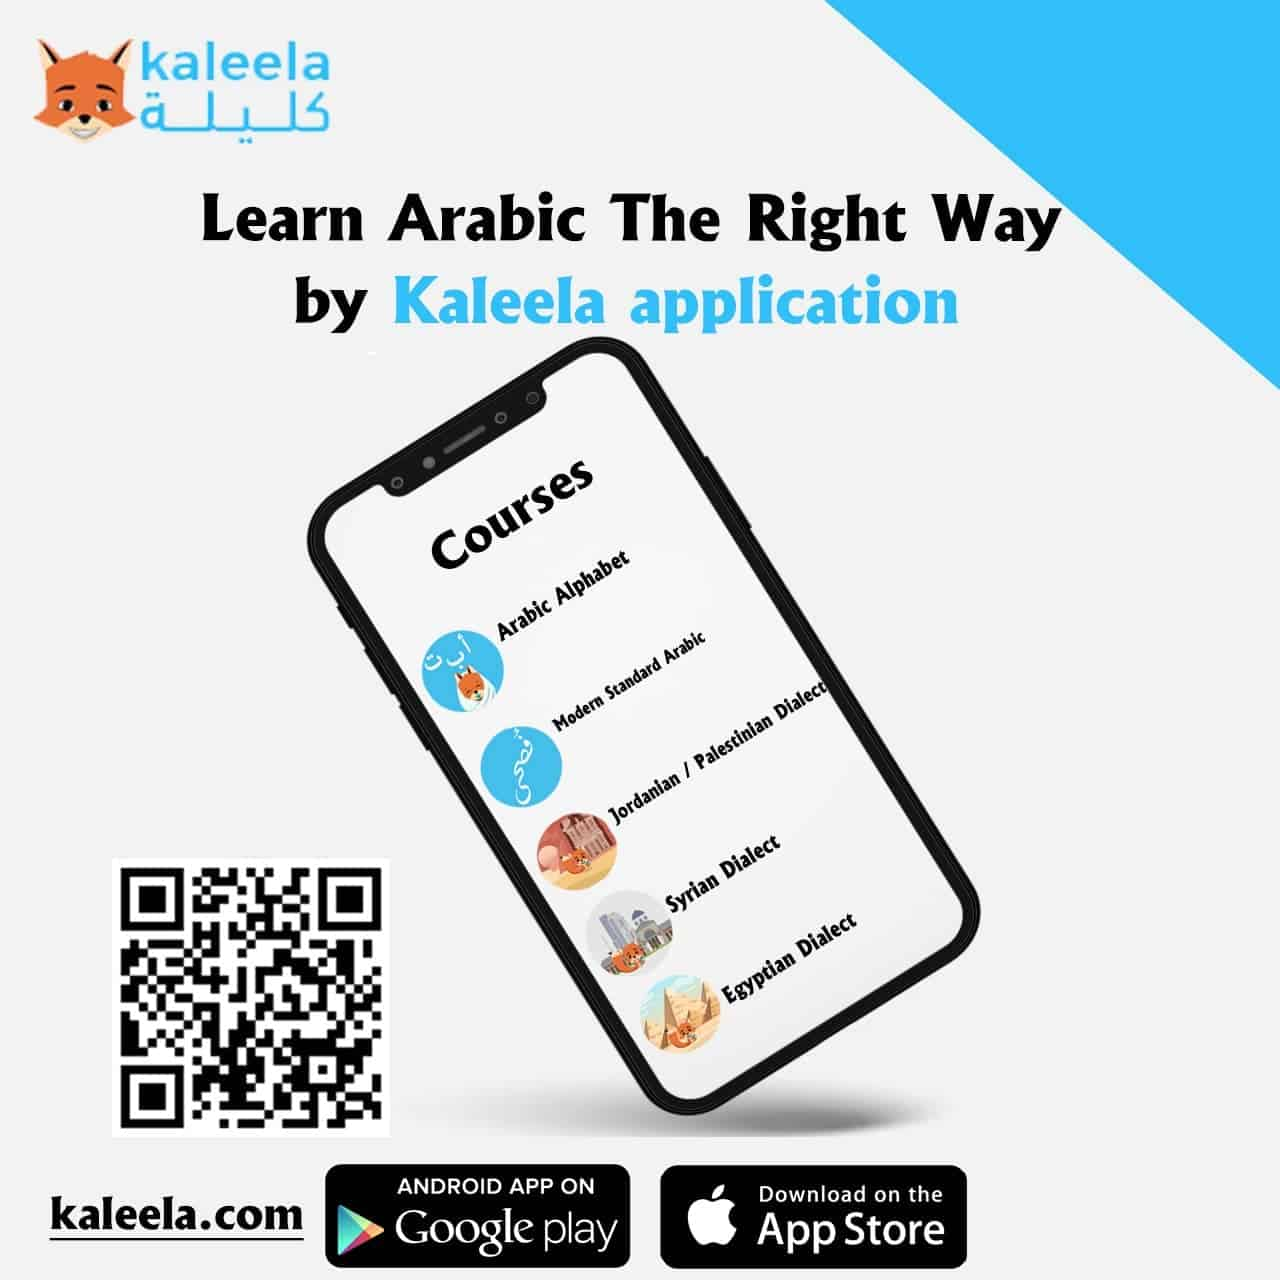 """Kaleela is a mobile application for learning """"Arabic language"""" for non native speakers. The app includes Arabic lessons in both Modern Standard Arabic (Fusha) and Arabic dialects (Amiyah) Try it now"""